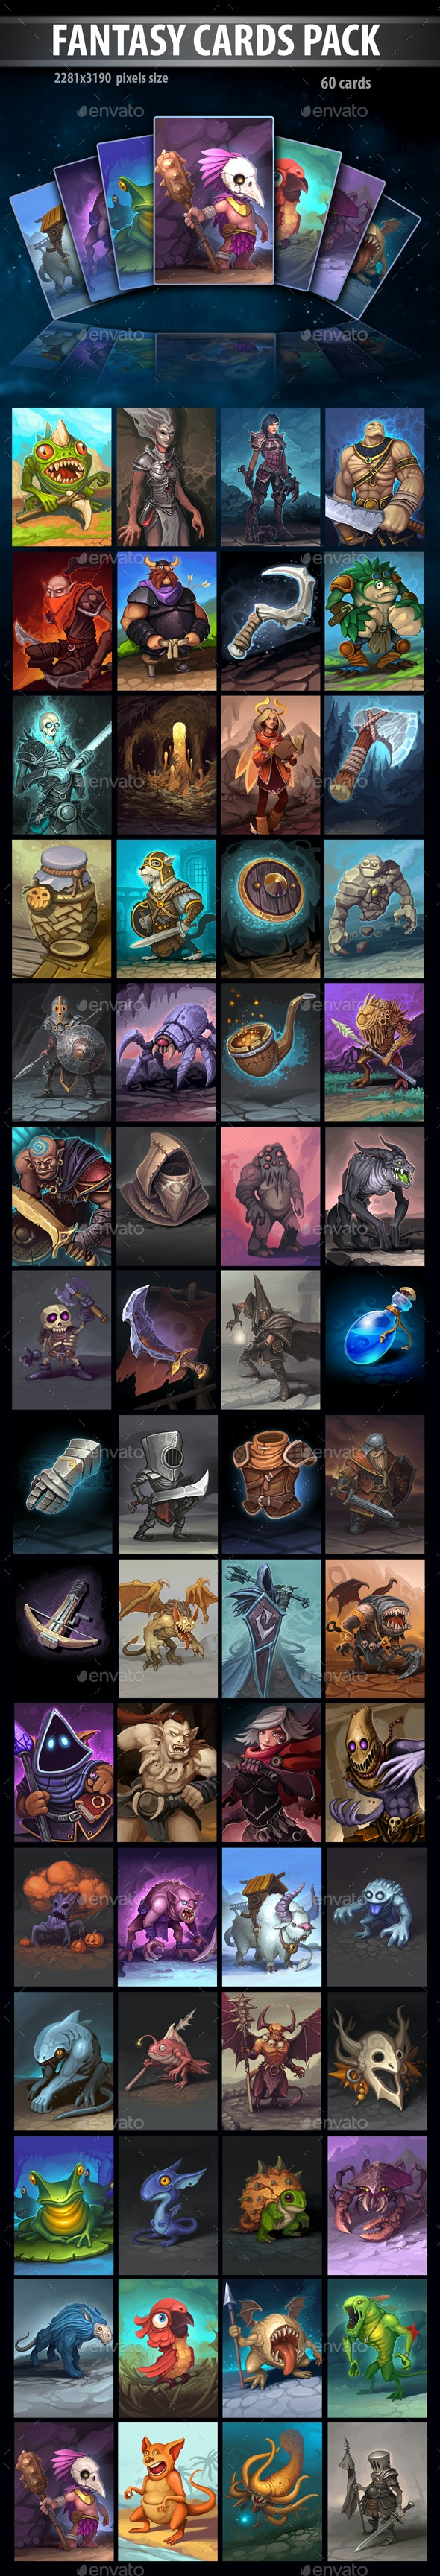 Fantasy Cards Pack - Miscellaneous Game Assets